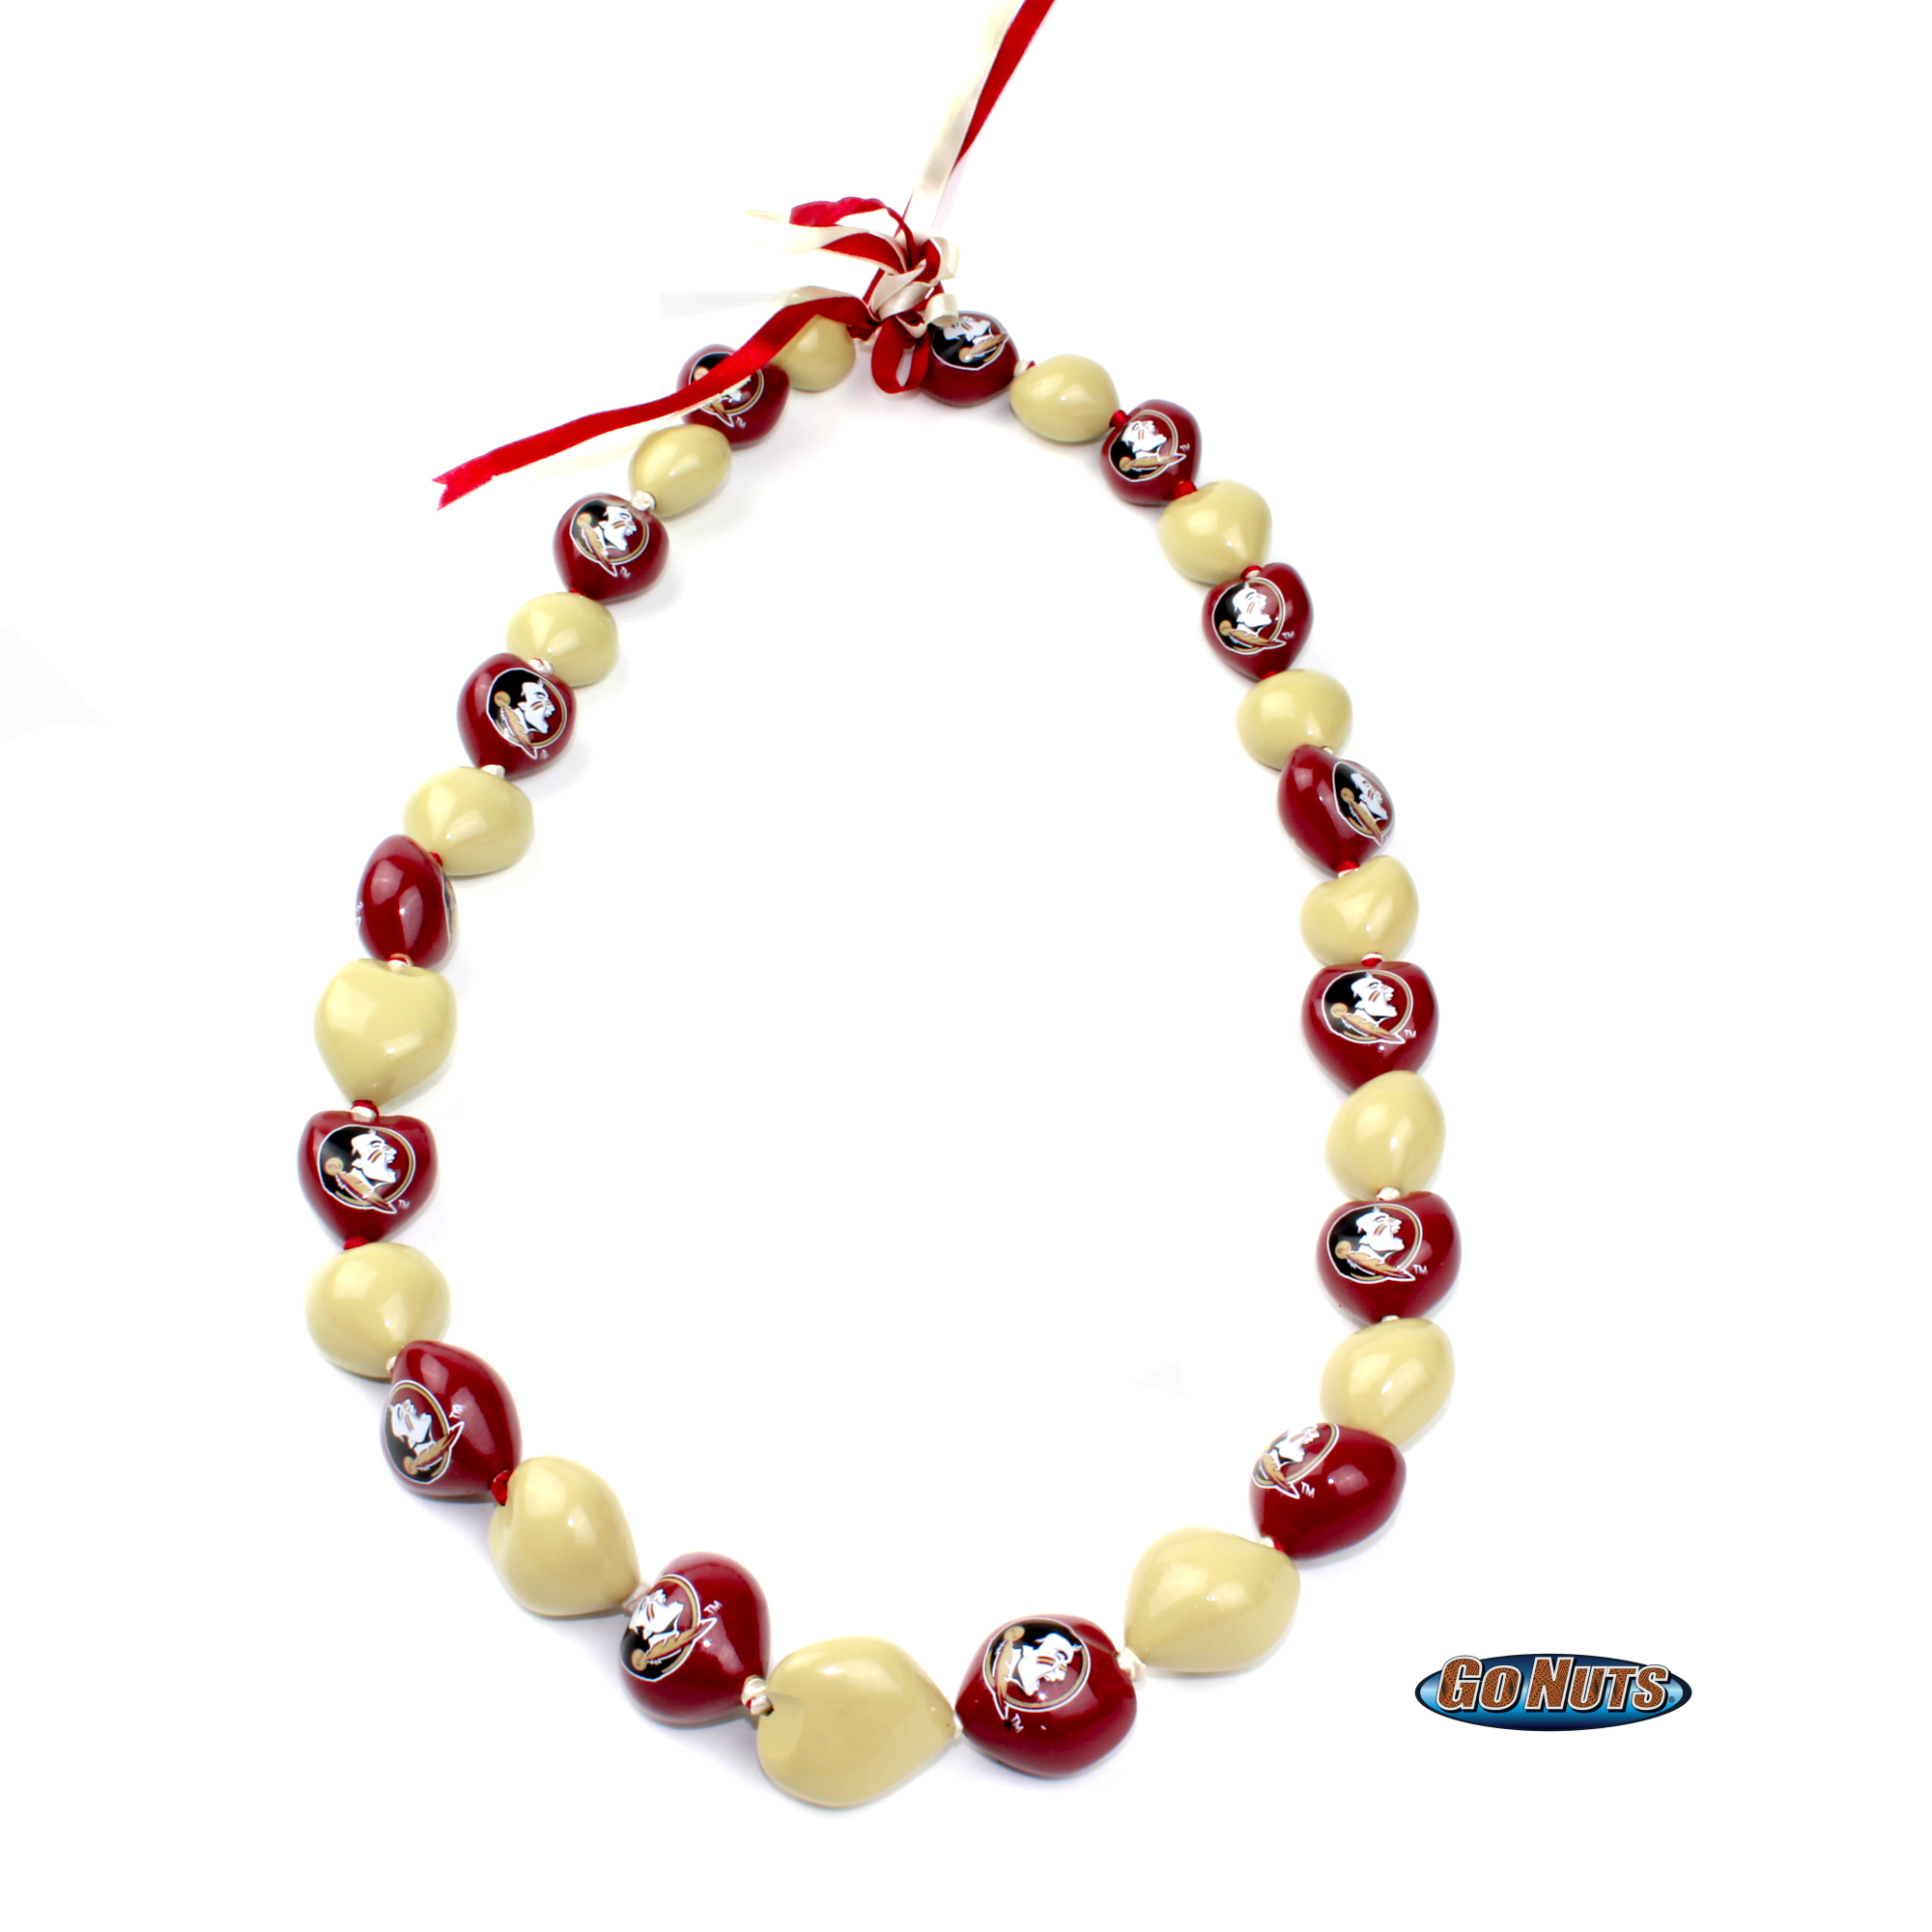 com amazon nut fan nuts lei necklace arizona outdoors ncaa dp sports necklaces go kukui wildcats